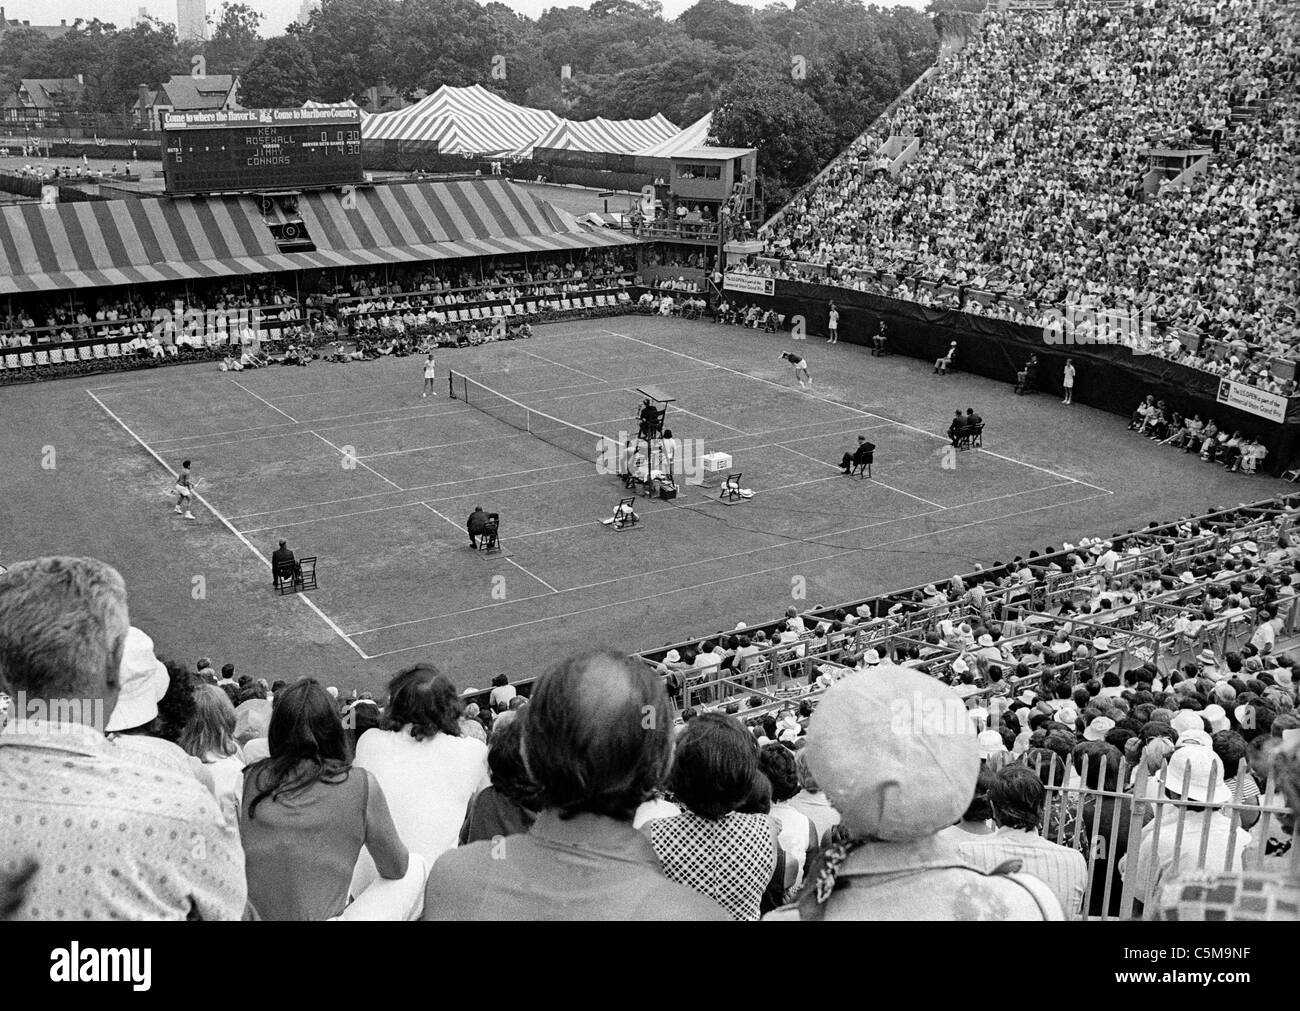 Spectators Tennis Black and White Stock s & Alamy